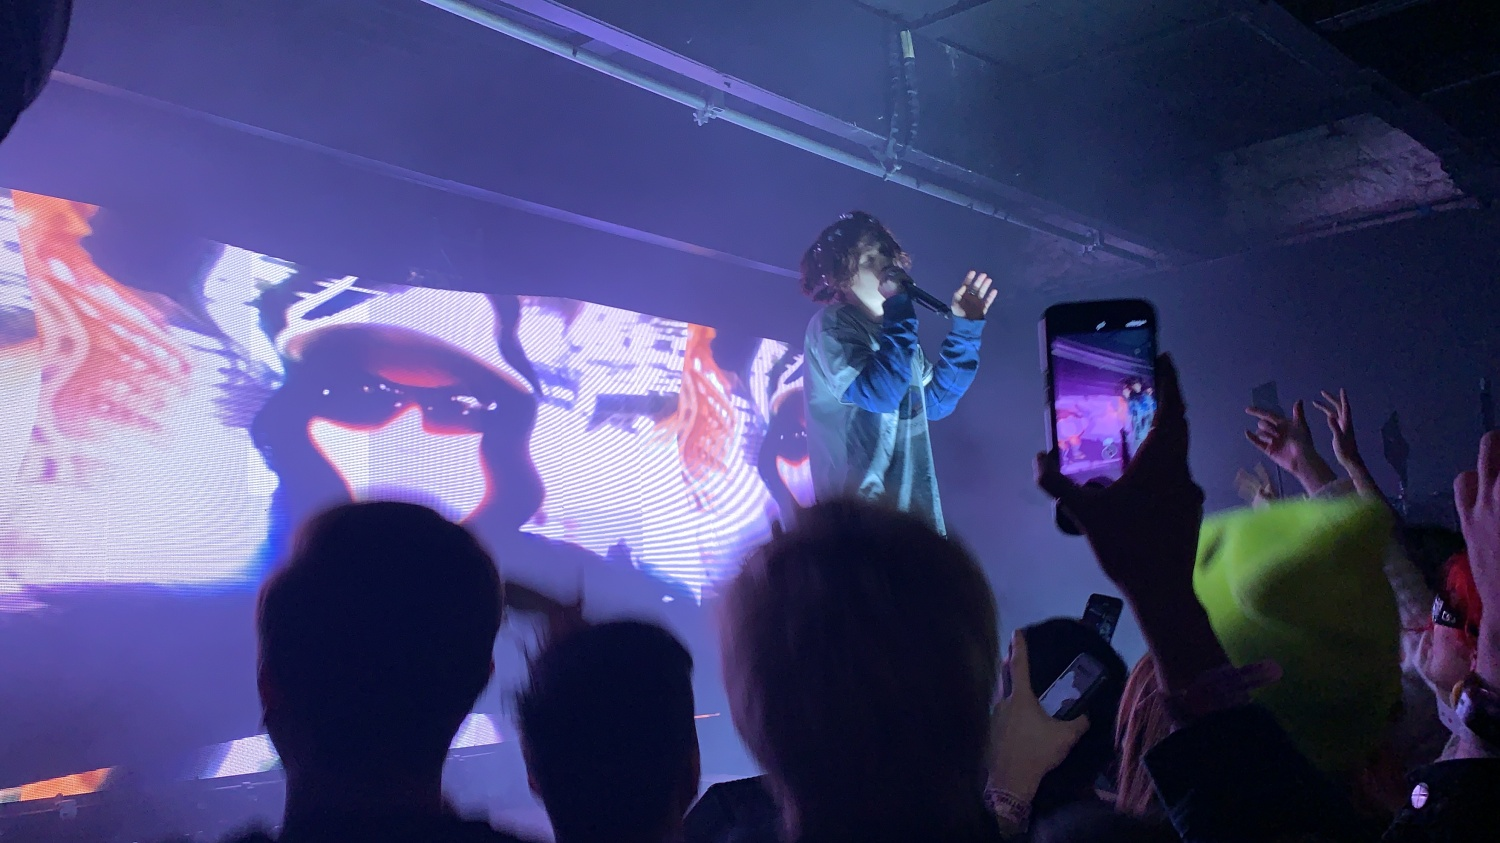 Bladee at SXSW by Jamie Barrientos